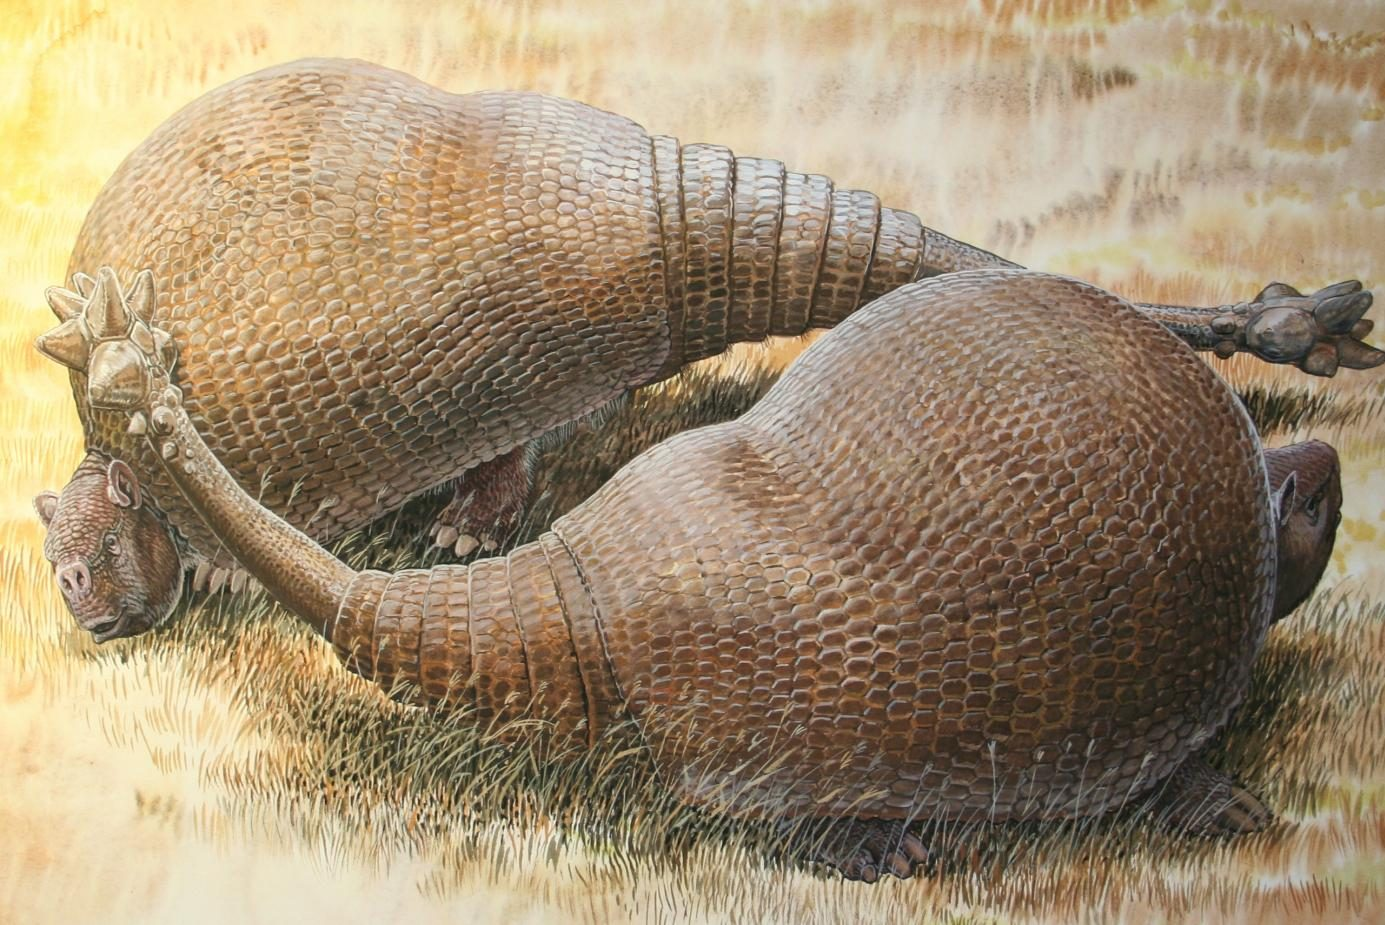 Two male glyptodonts (Doedicurus clavicaudatus) facing off: The massive, club-shaped tails were probably used more for intraspecific combat than defense against predators. ( Peter Schouten Illustration)